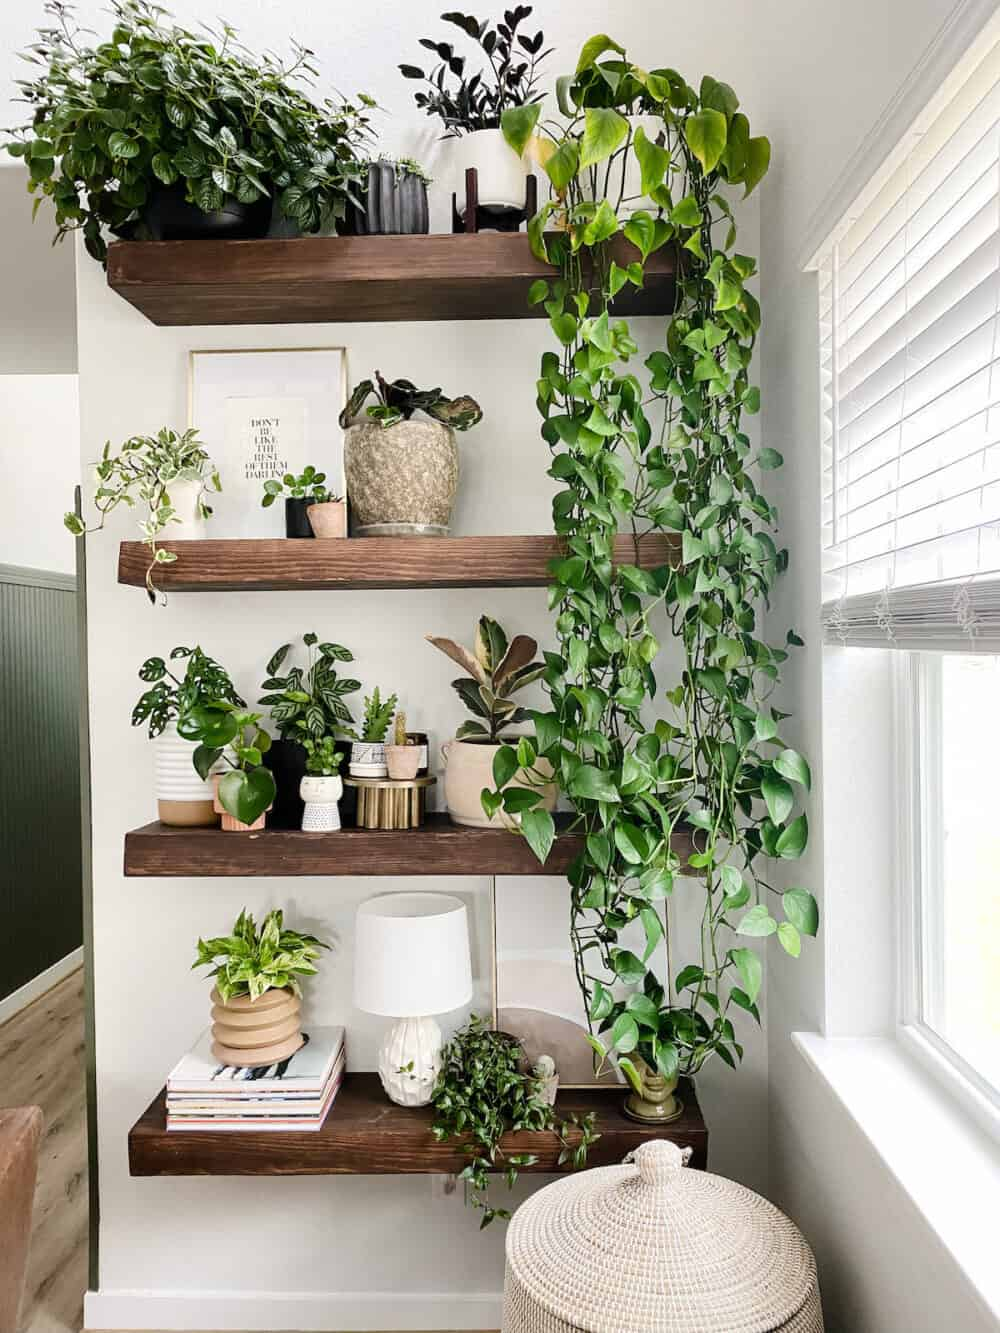 A set of floating shelves filled with plants